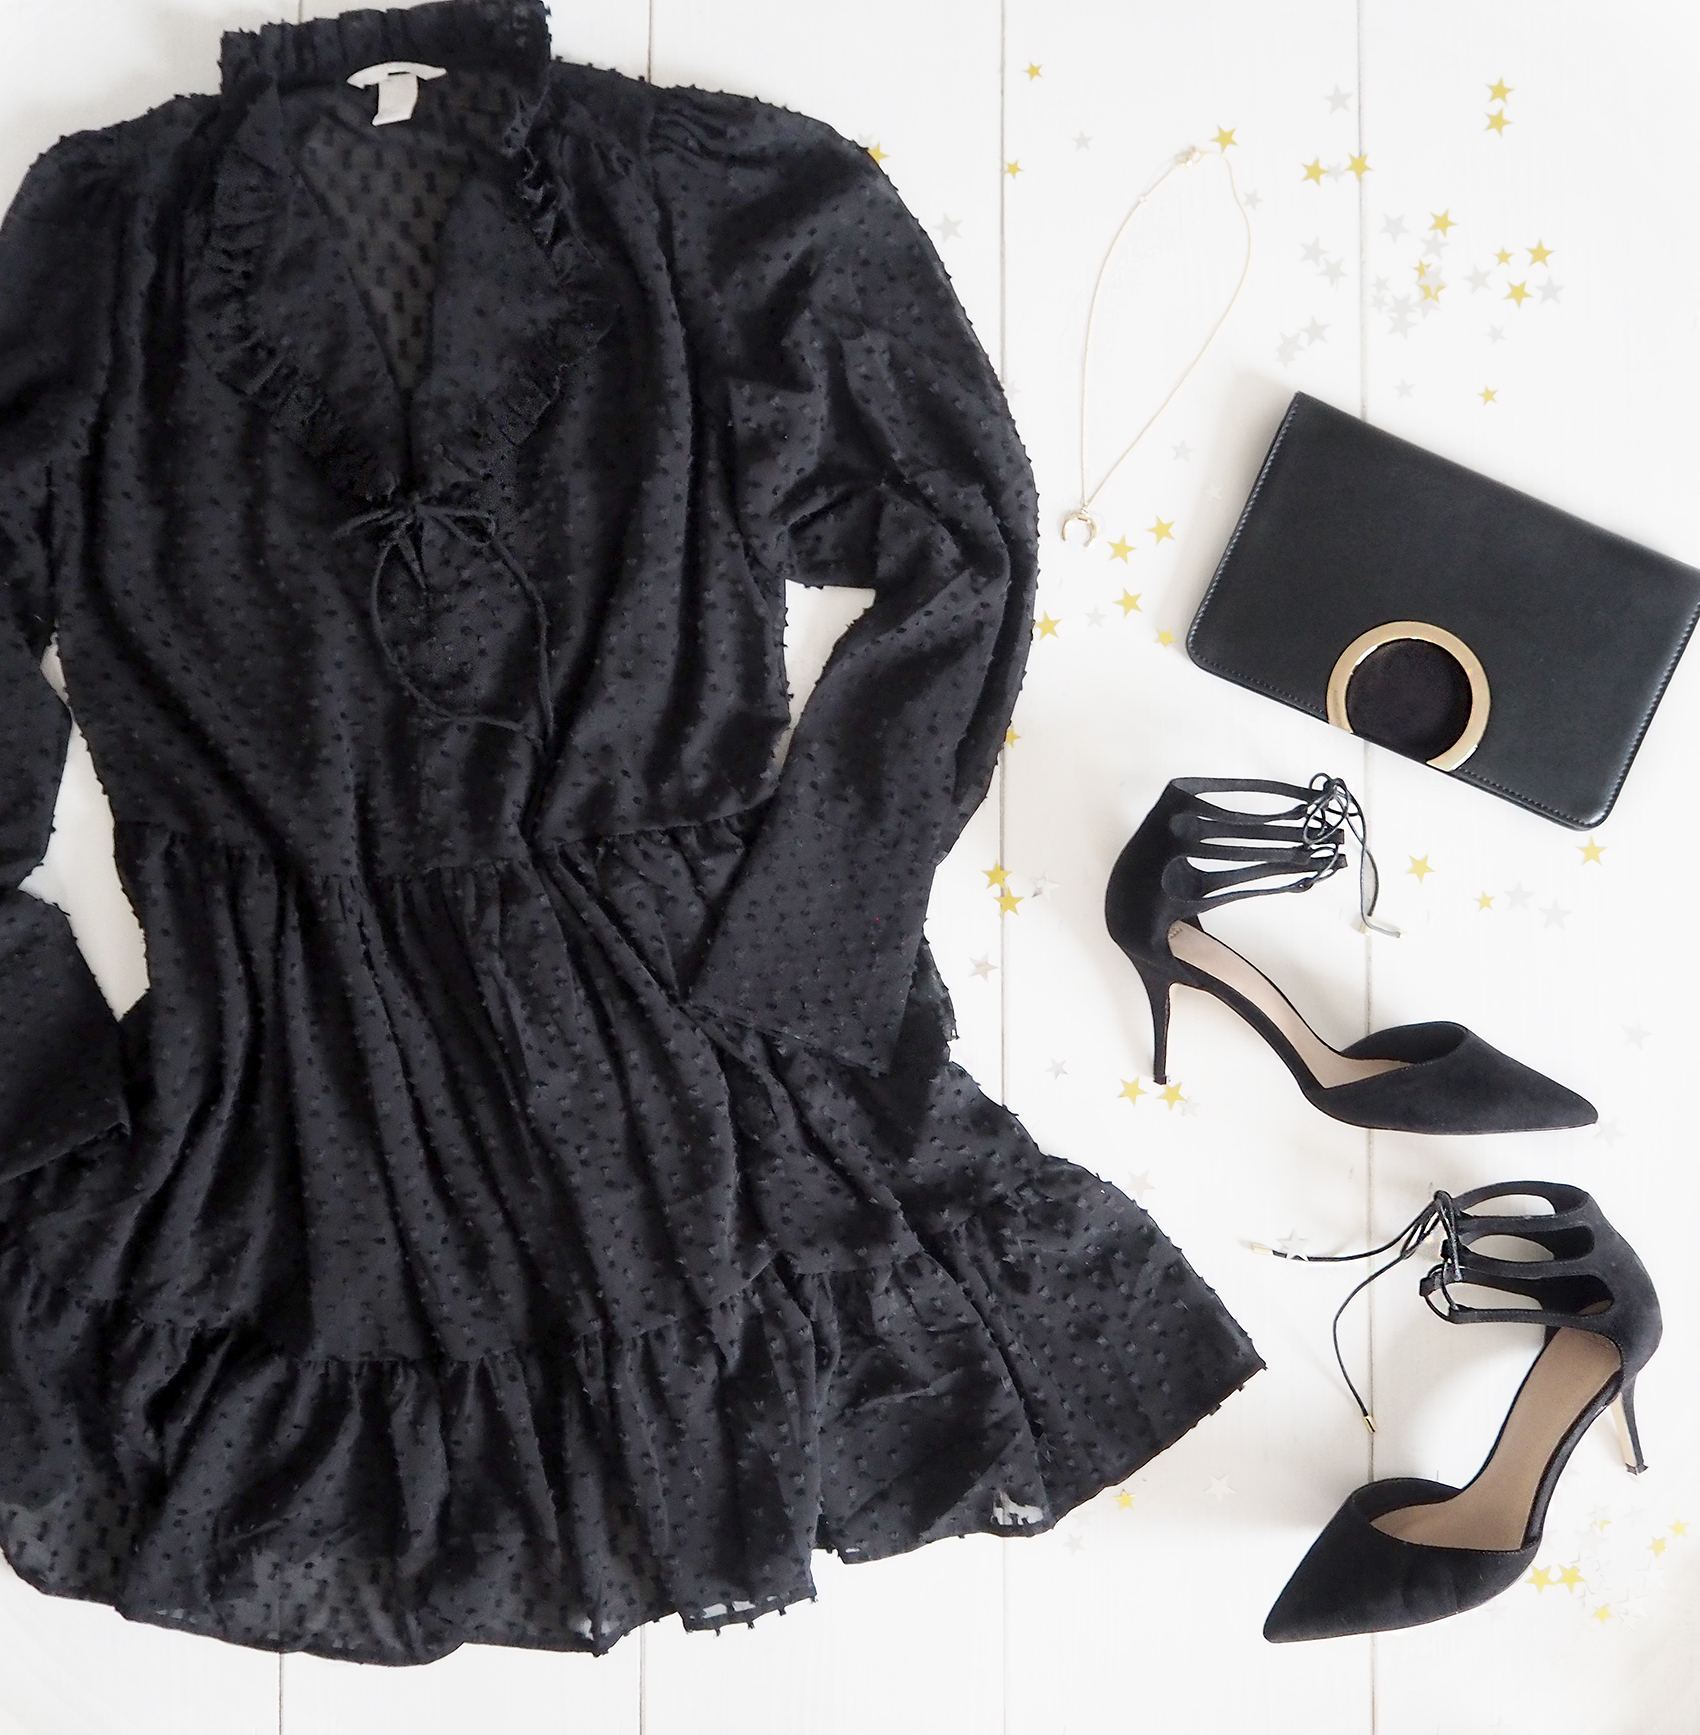 party outfit black dress and heels